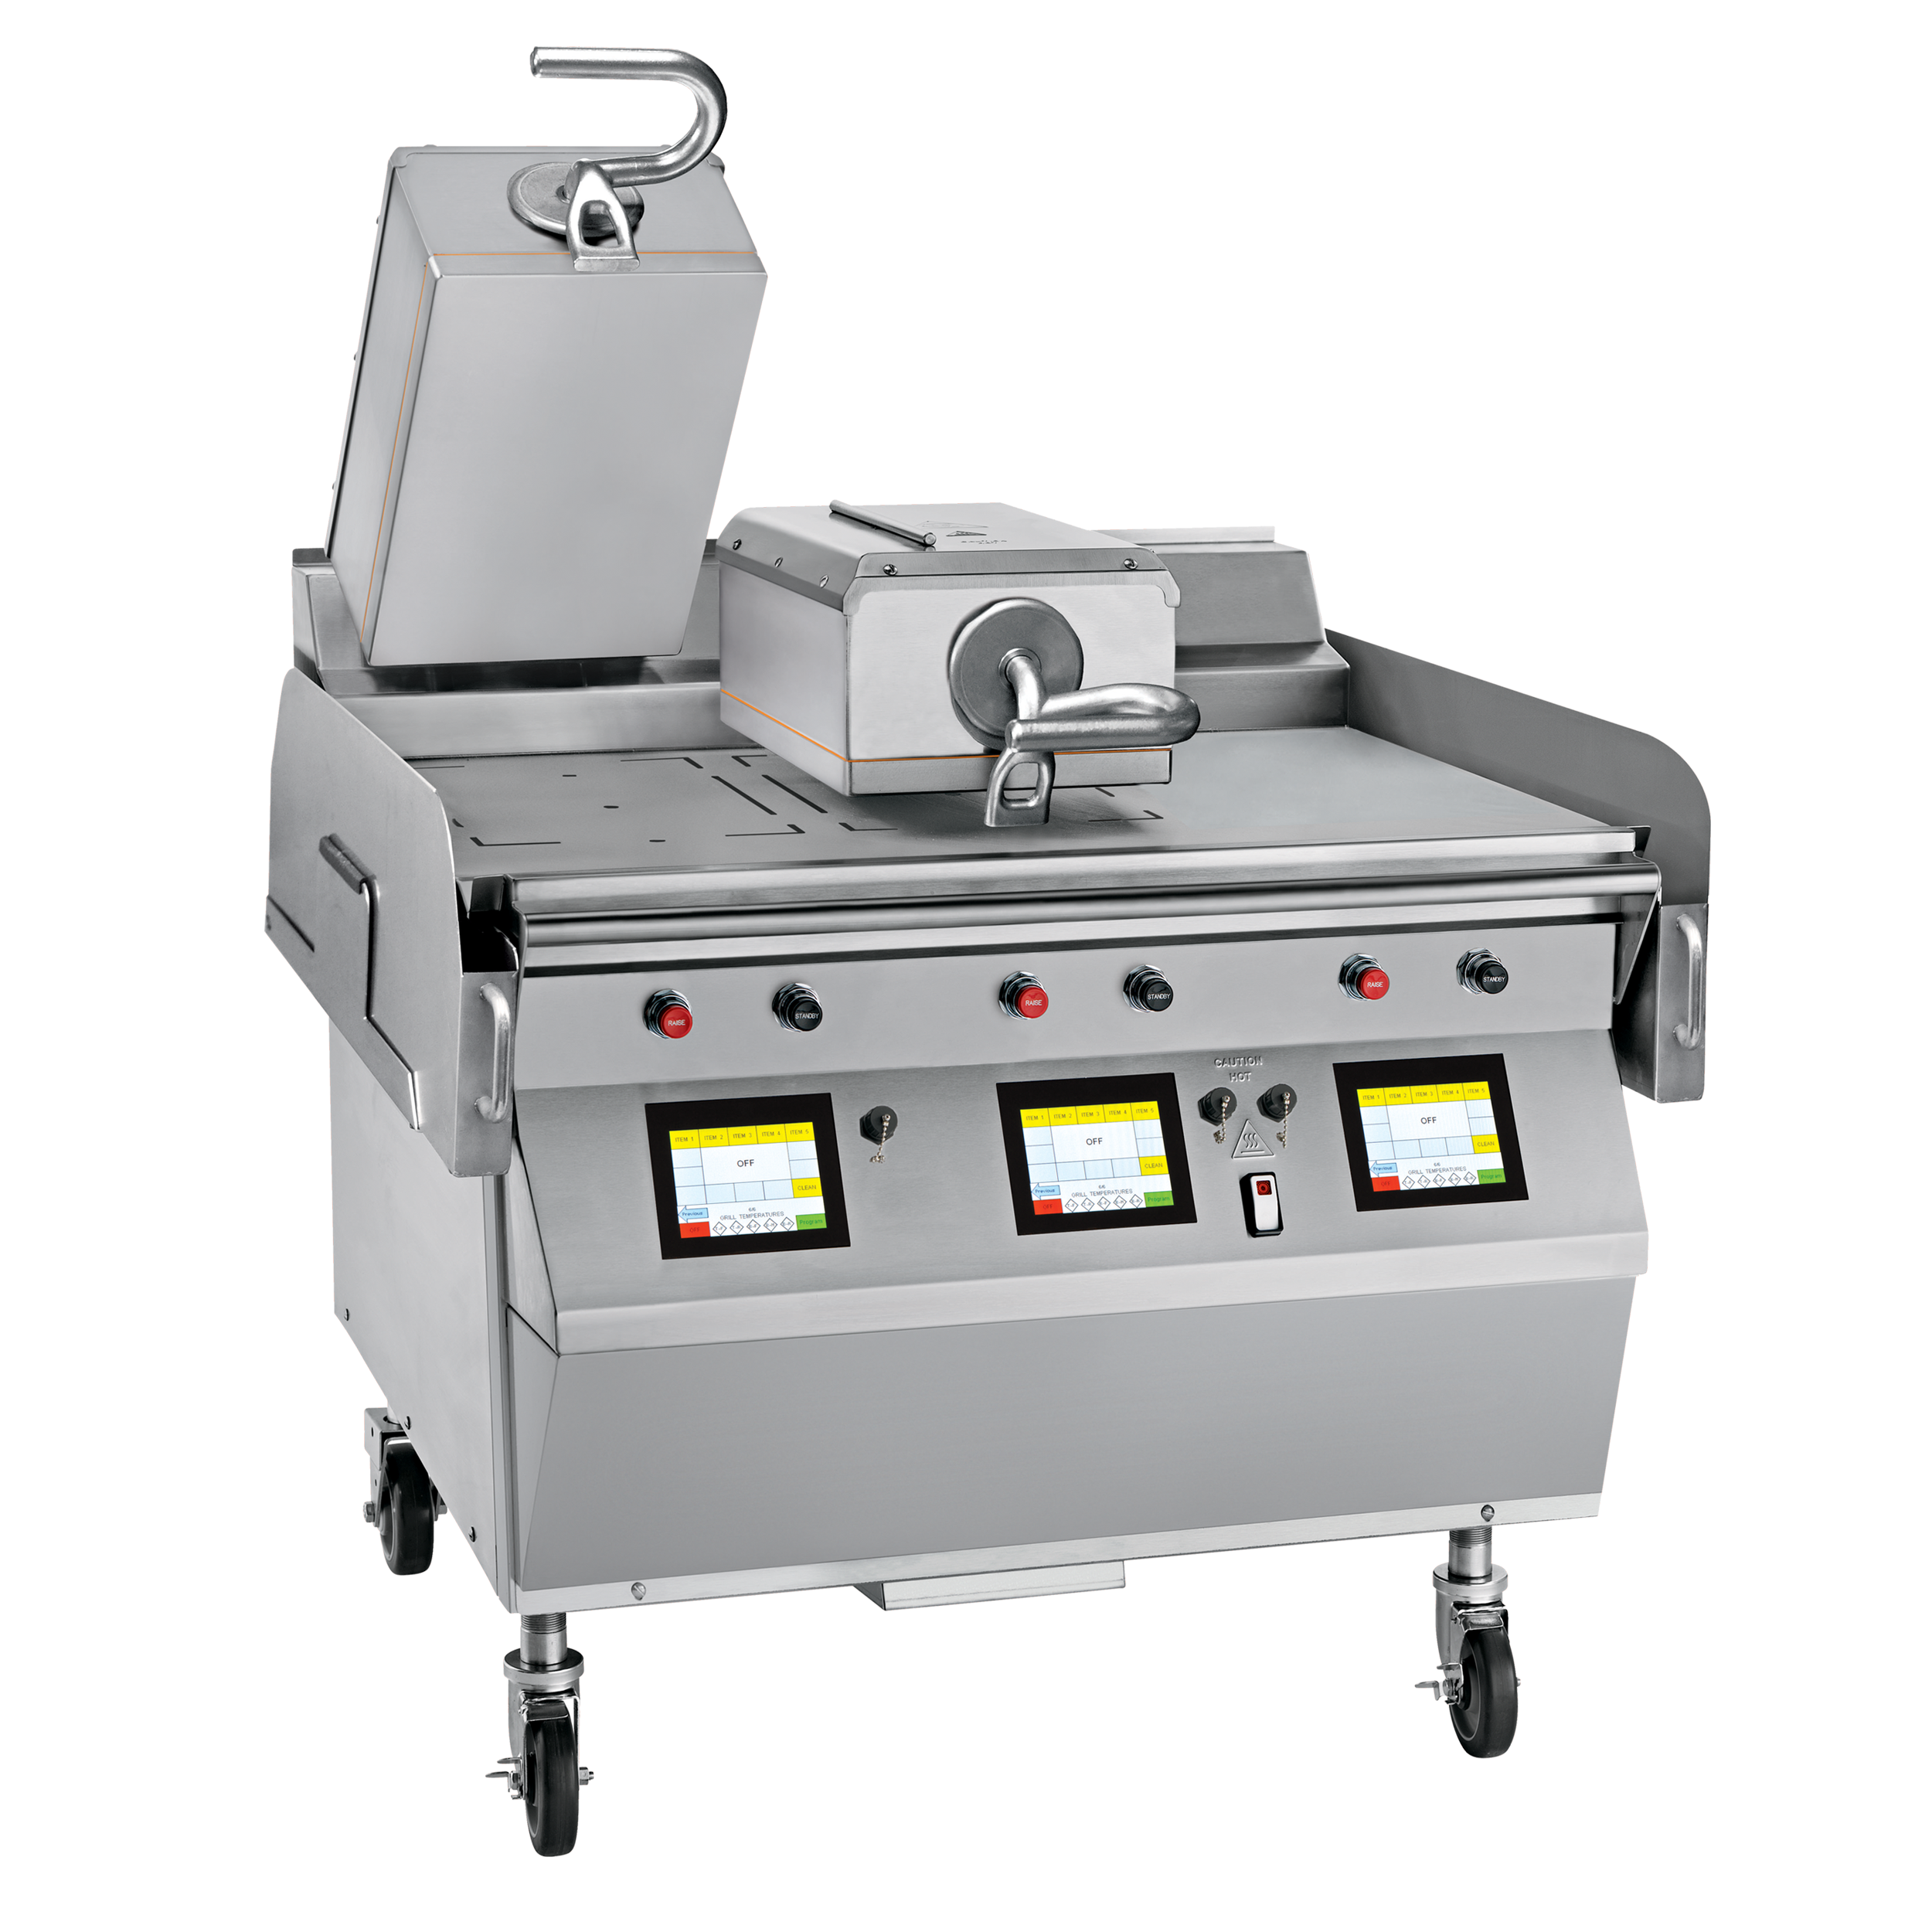 """Model L813   GAS/ELECTRIC 2 PLATEN 36"""" GRILL  One touch menu selection automatically provides accurate TIME, TEMPERATURE and GAP settings for every product.  KEY SPECIFICATIONS:   Lower Cooking Surface Heat Source : Gas   Upper Platen Heat Source : Electric   Cooking Surface Dimensions : 36""""   Installation : Floor Model   Upper Platens : 2"""